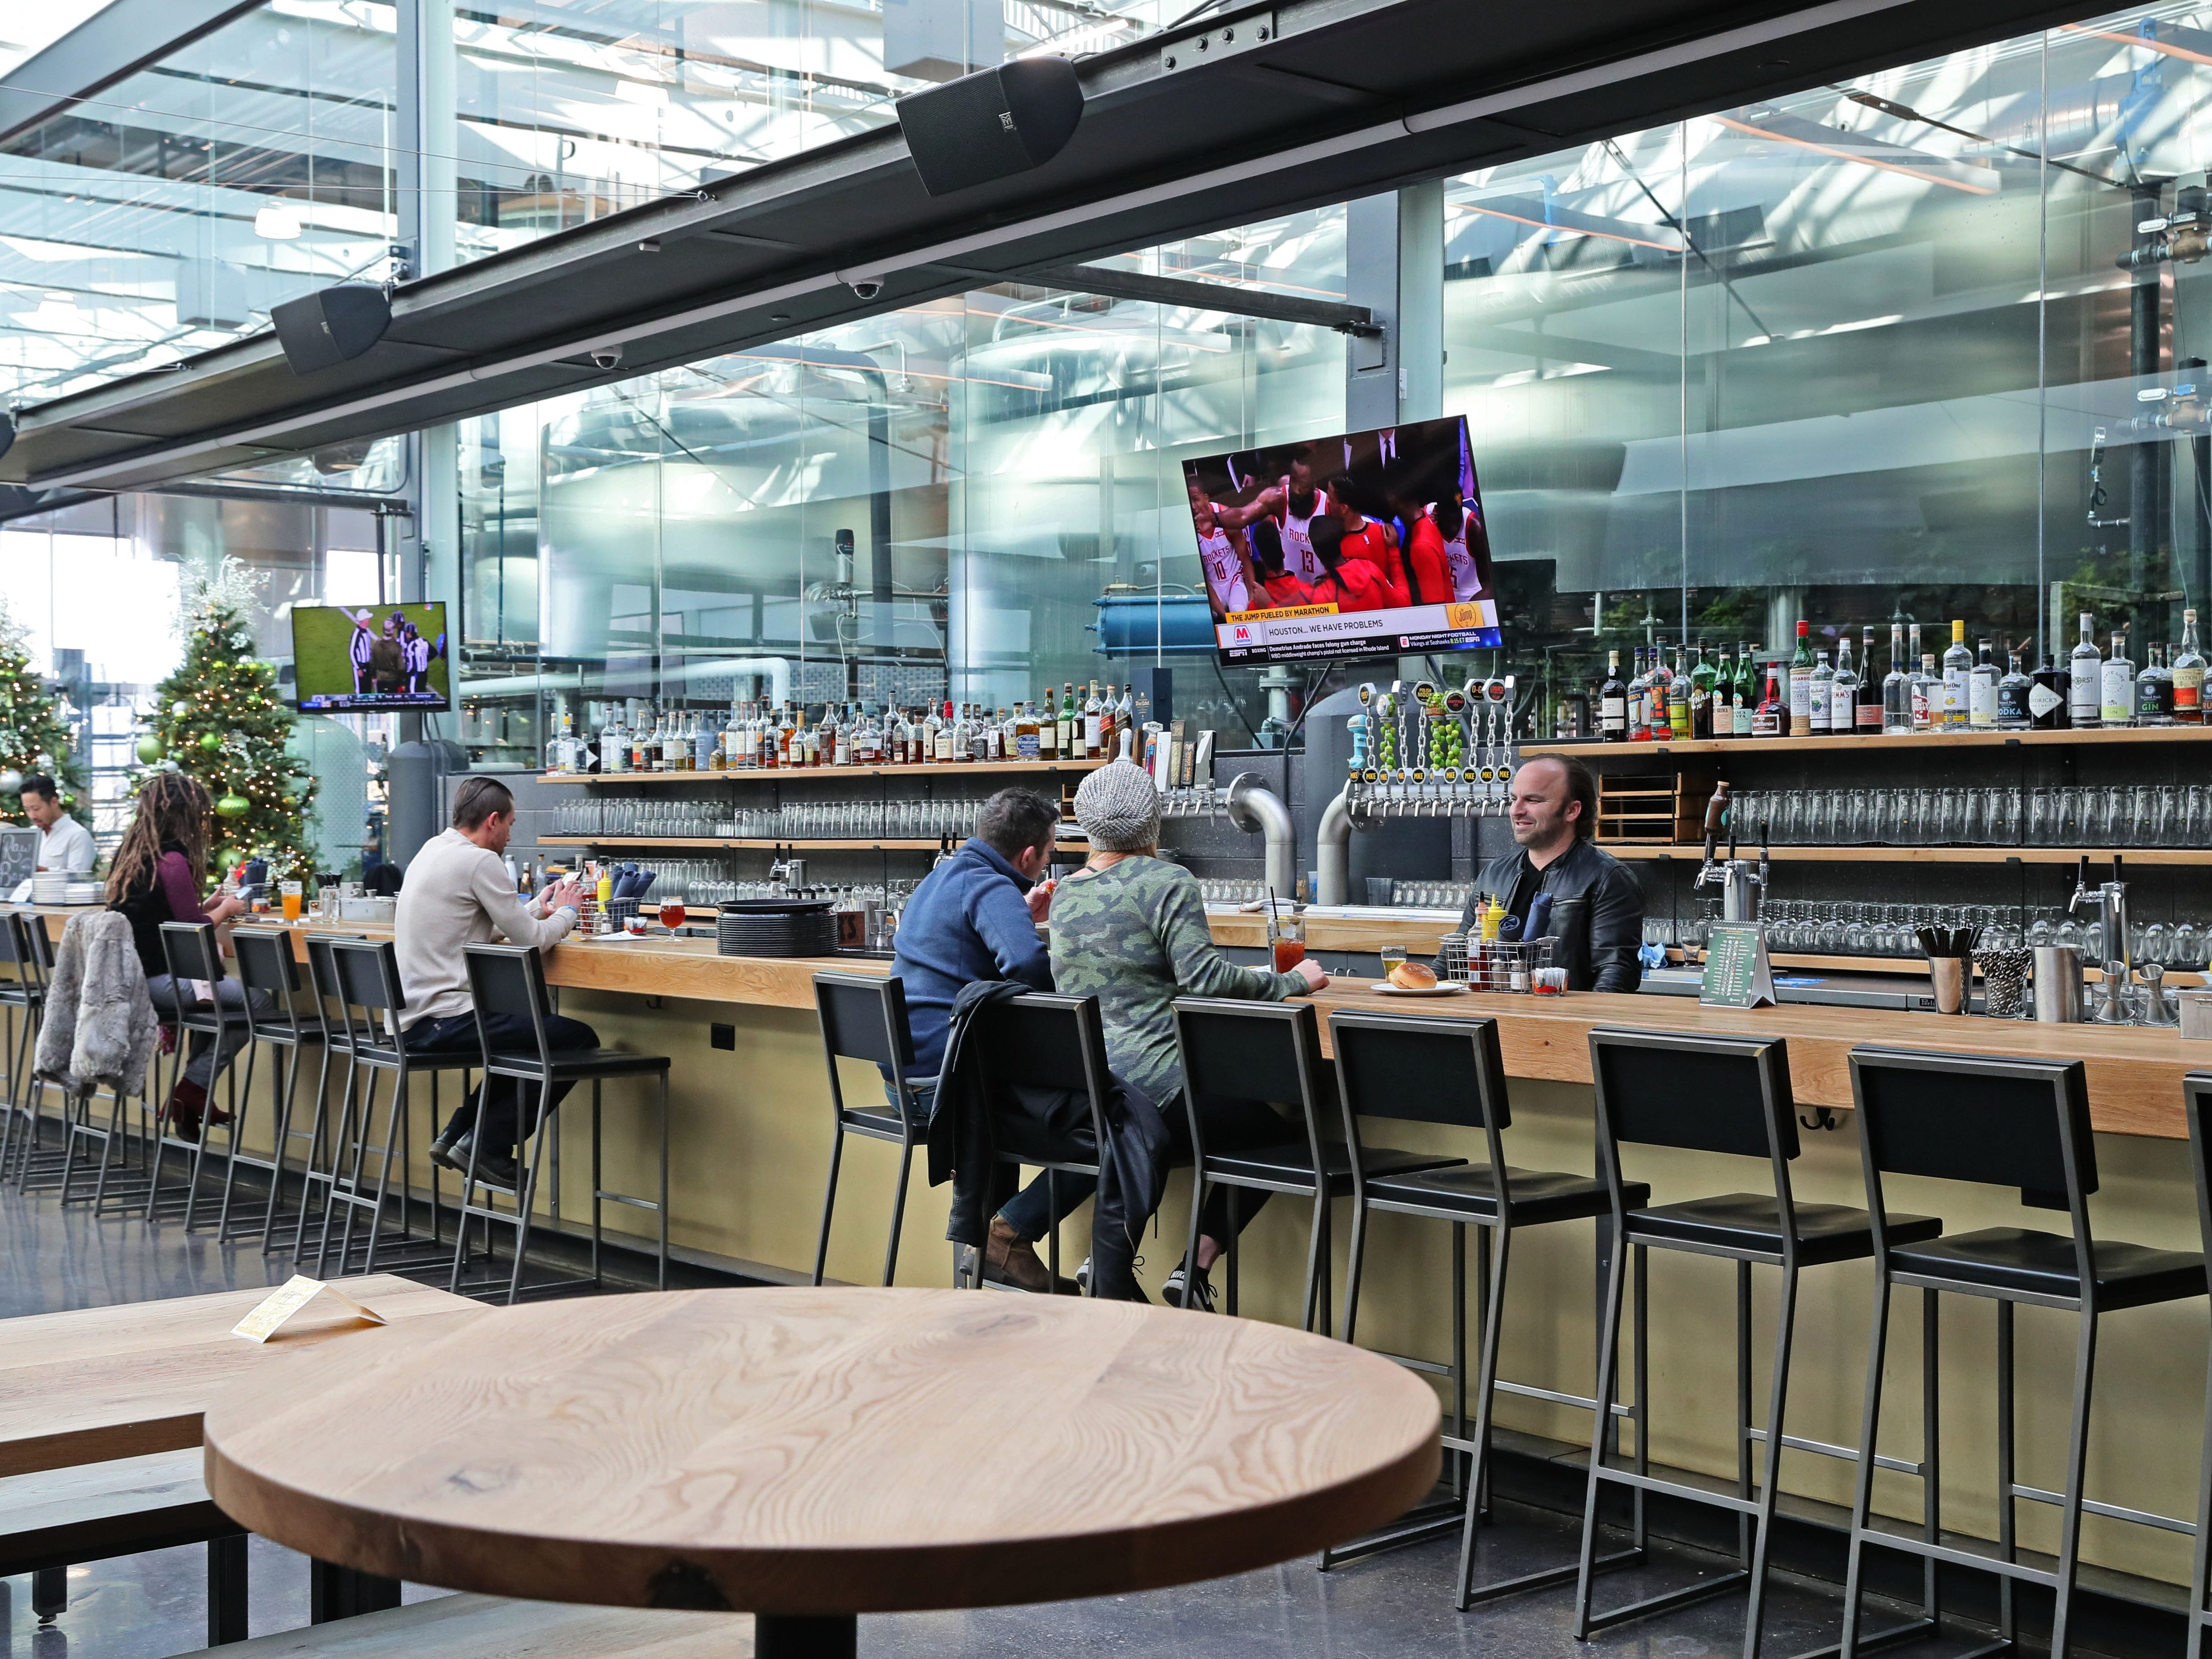 The bar area at Glass + Griddle has an open feel, as seen in December 2018.